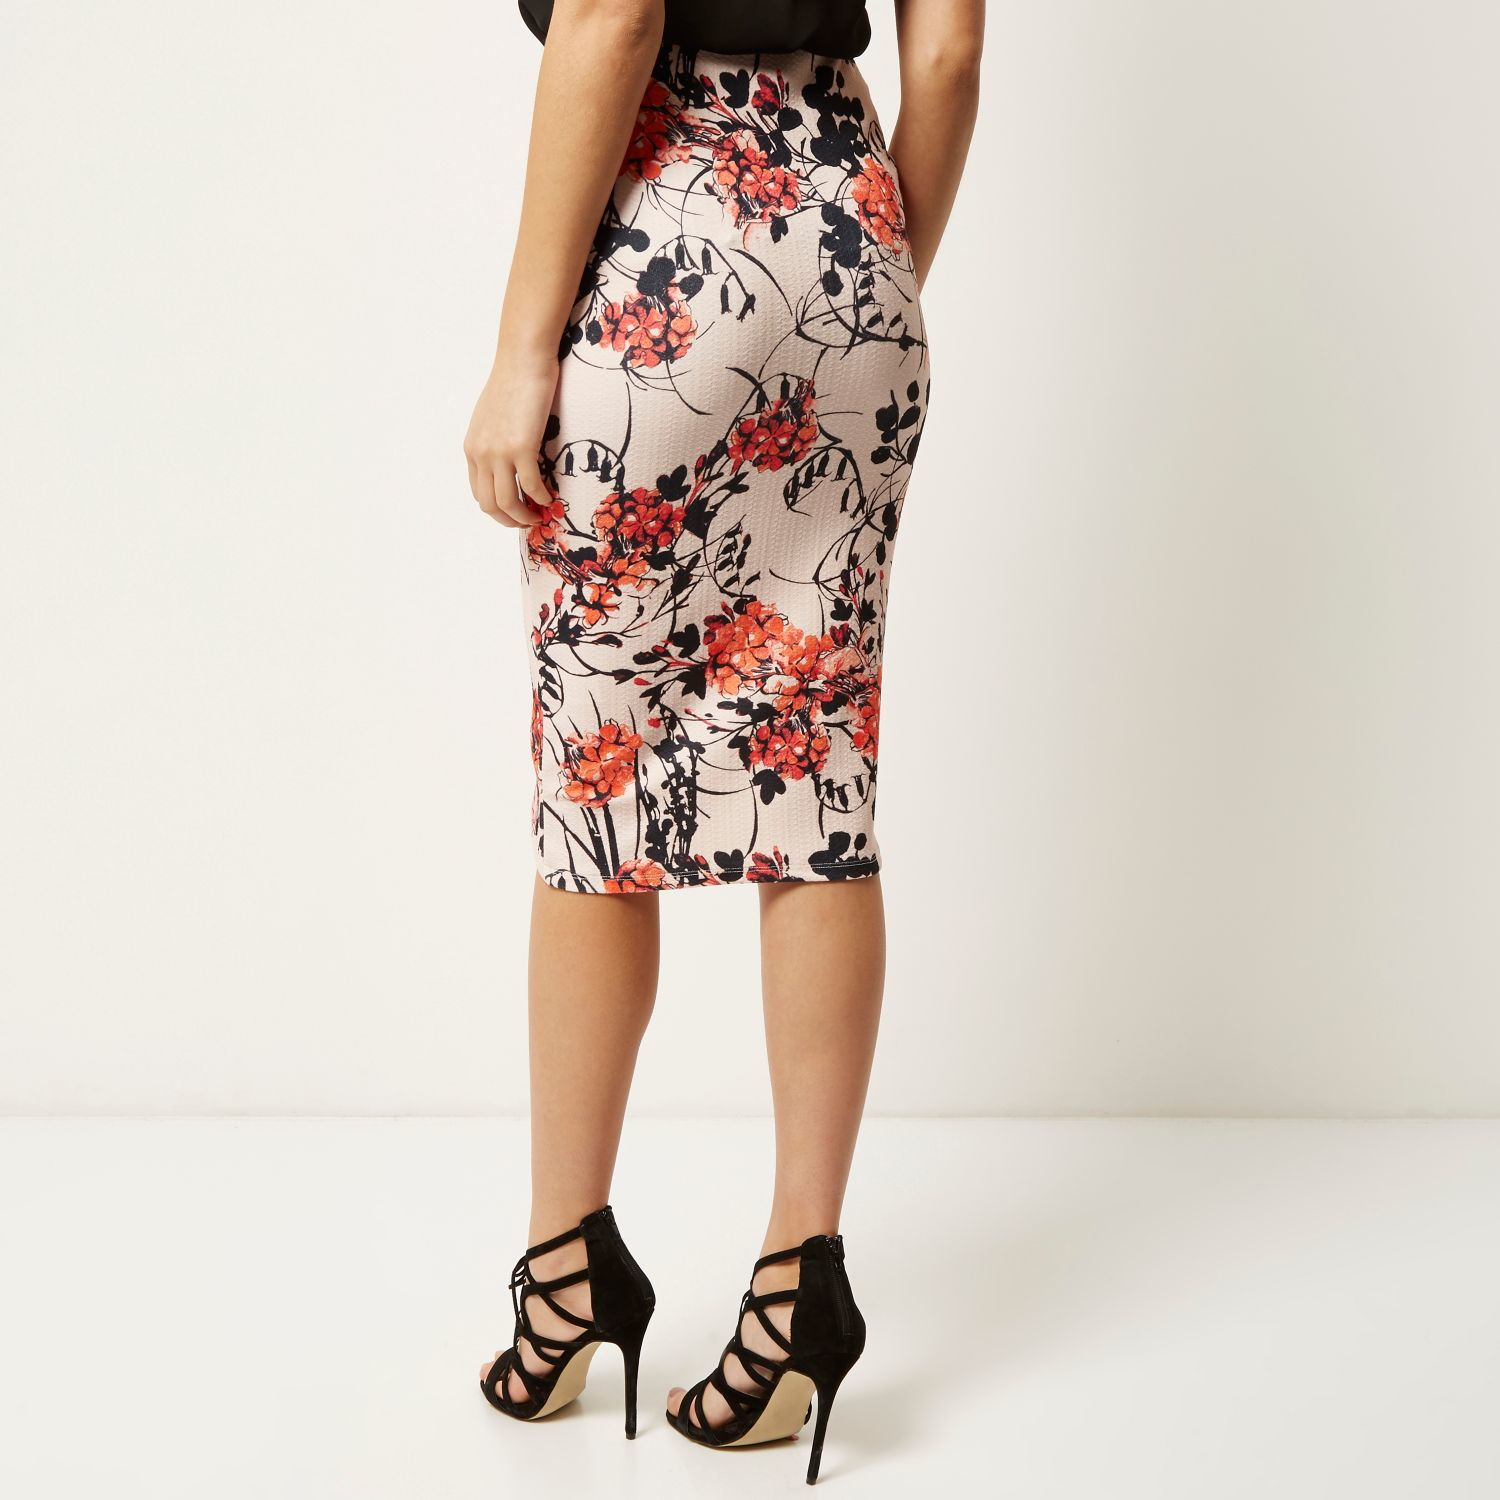 River island Pink Floral Print Pencil Skirt in Pink | Lyst